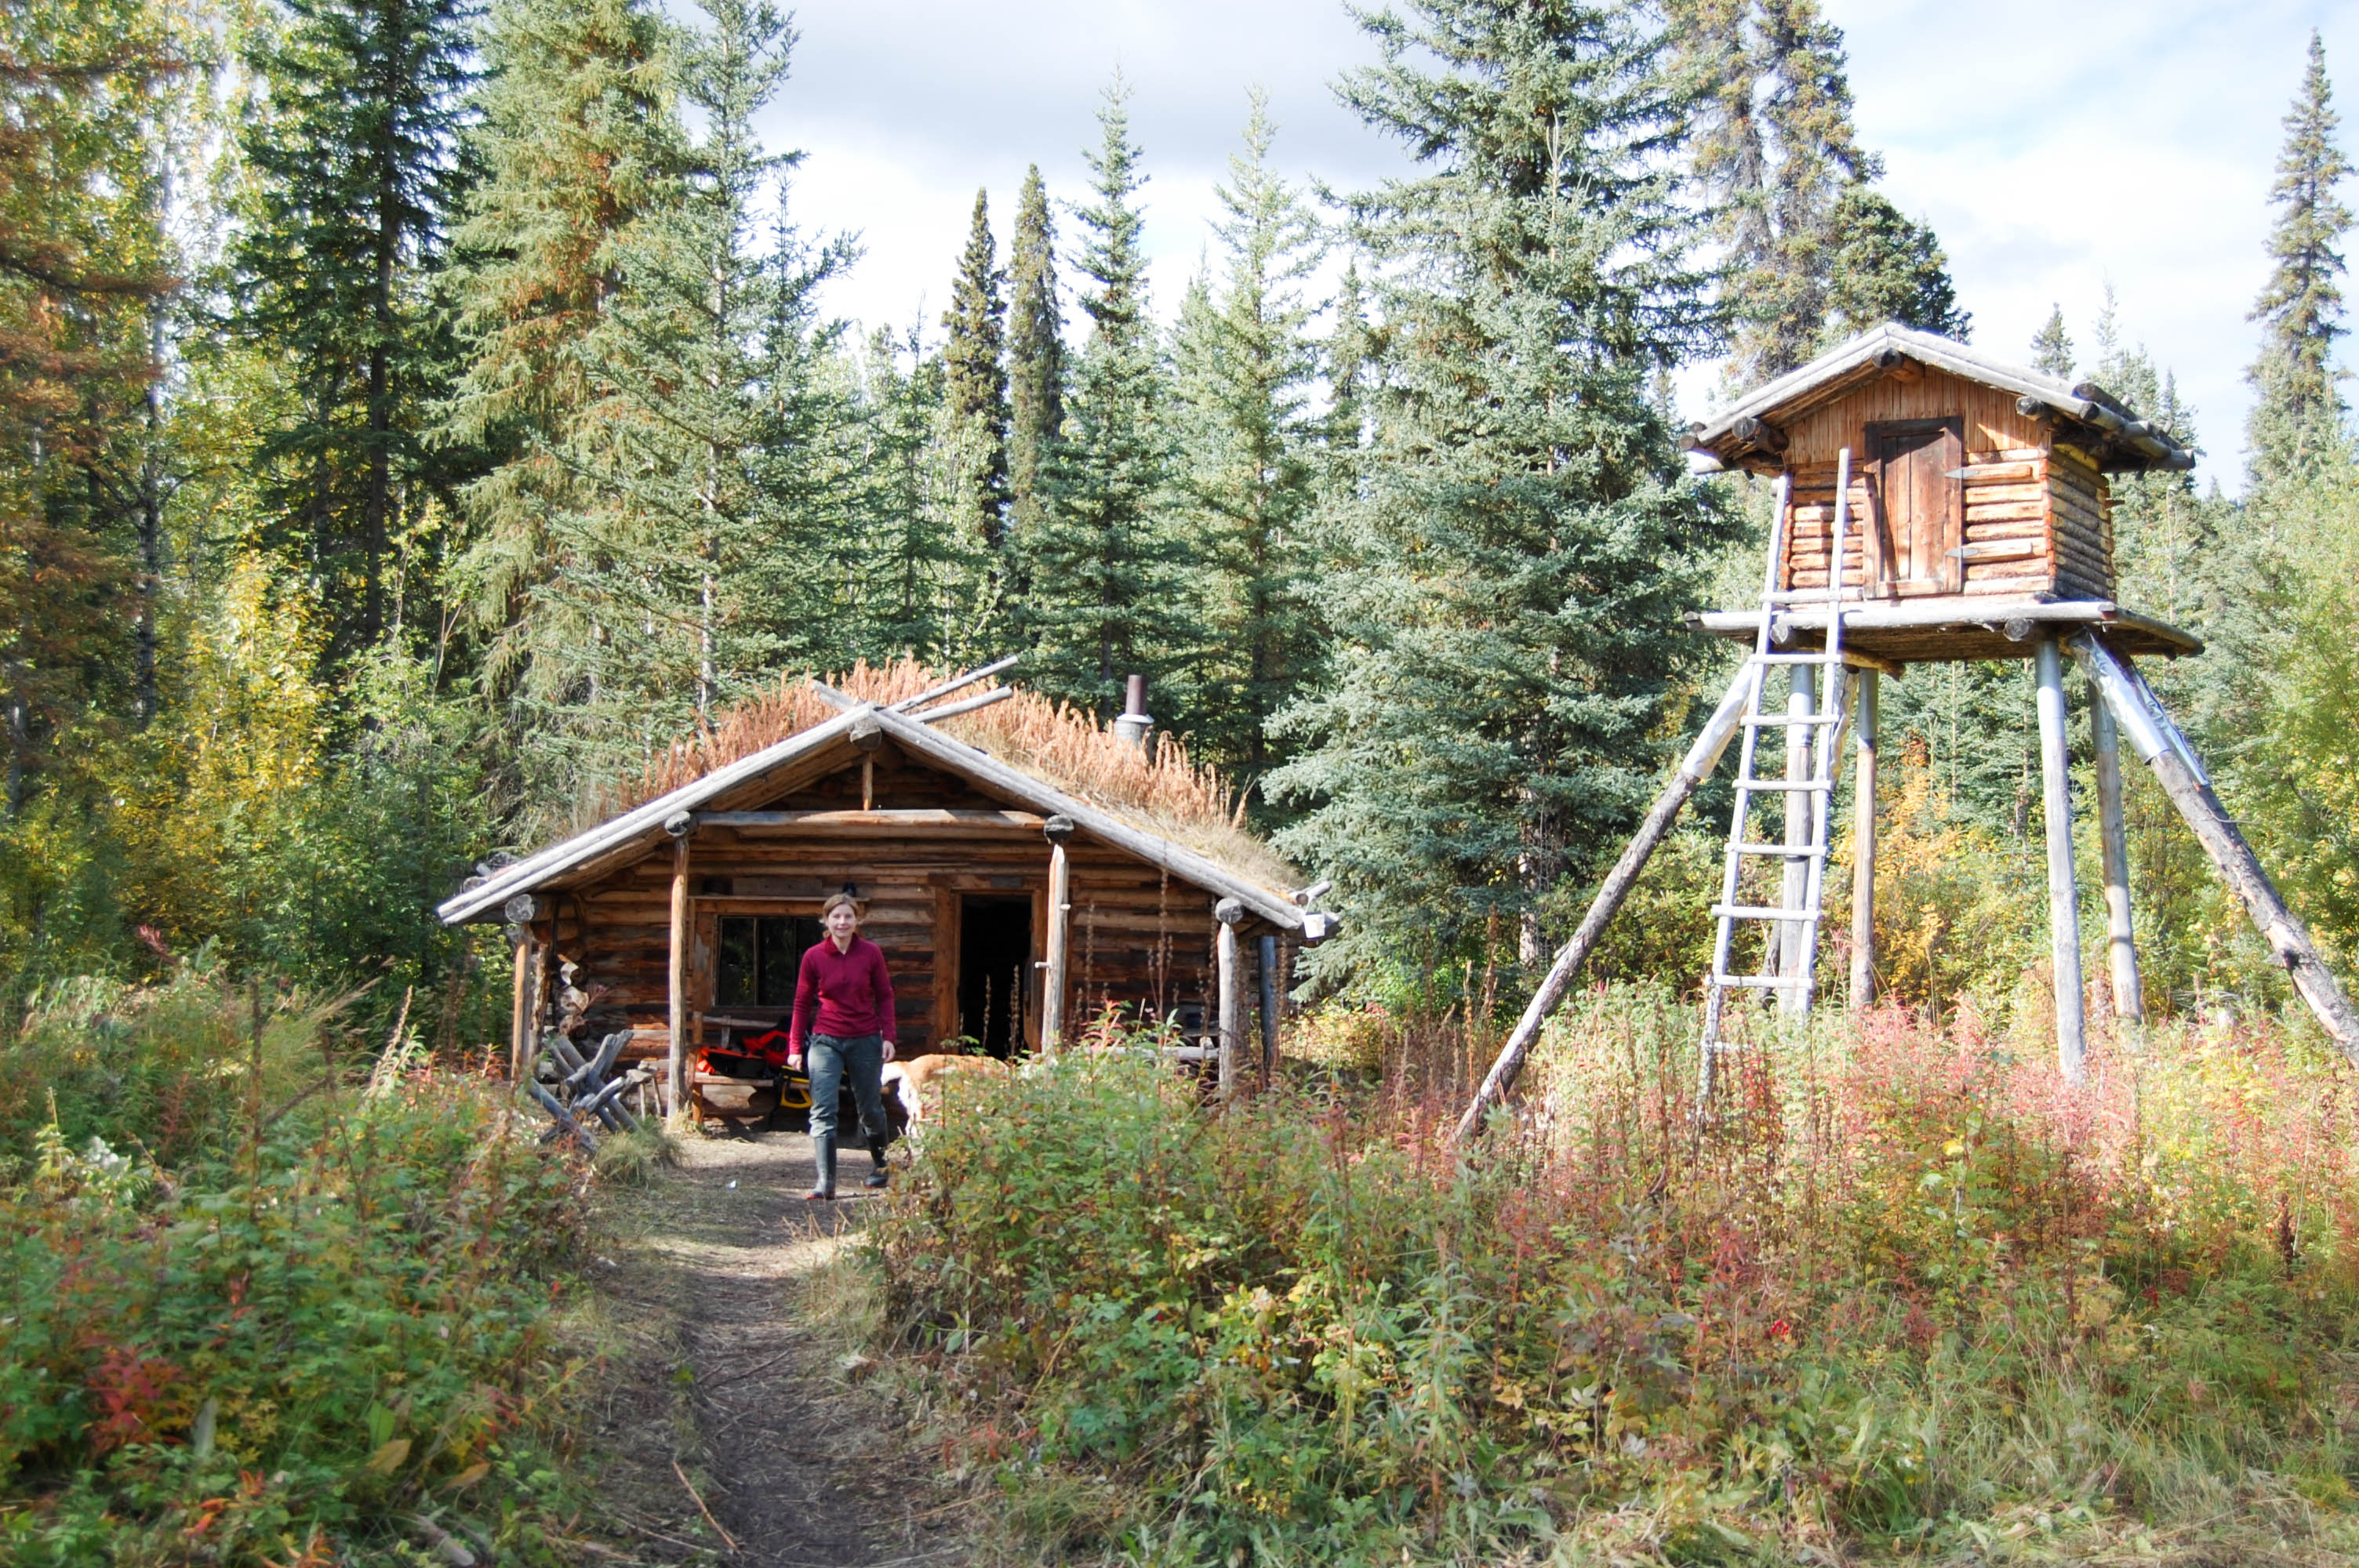 The Klondiker - Big Salmon River - log cabins